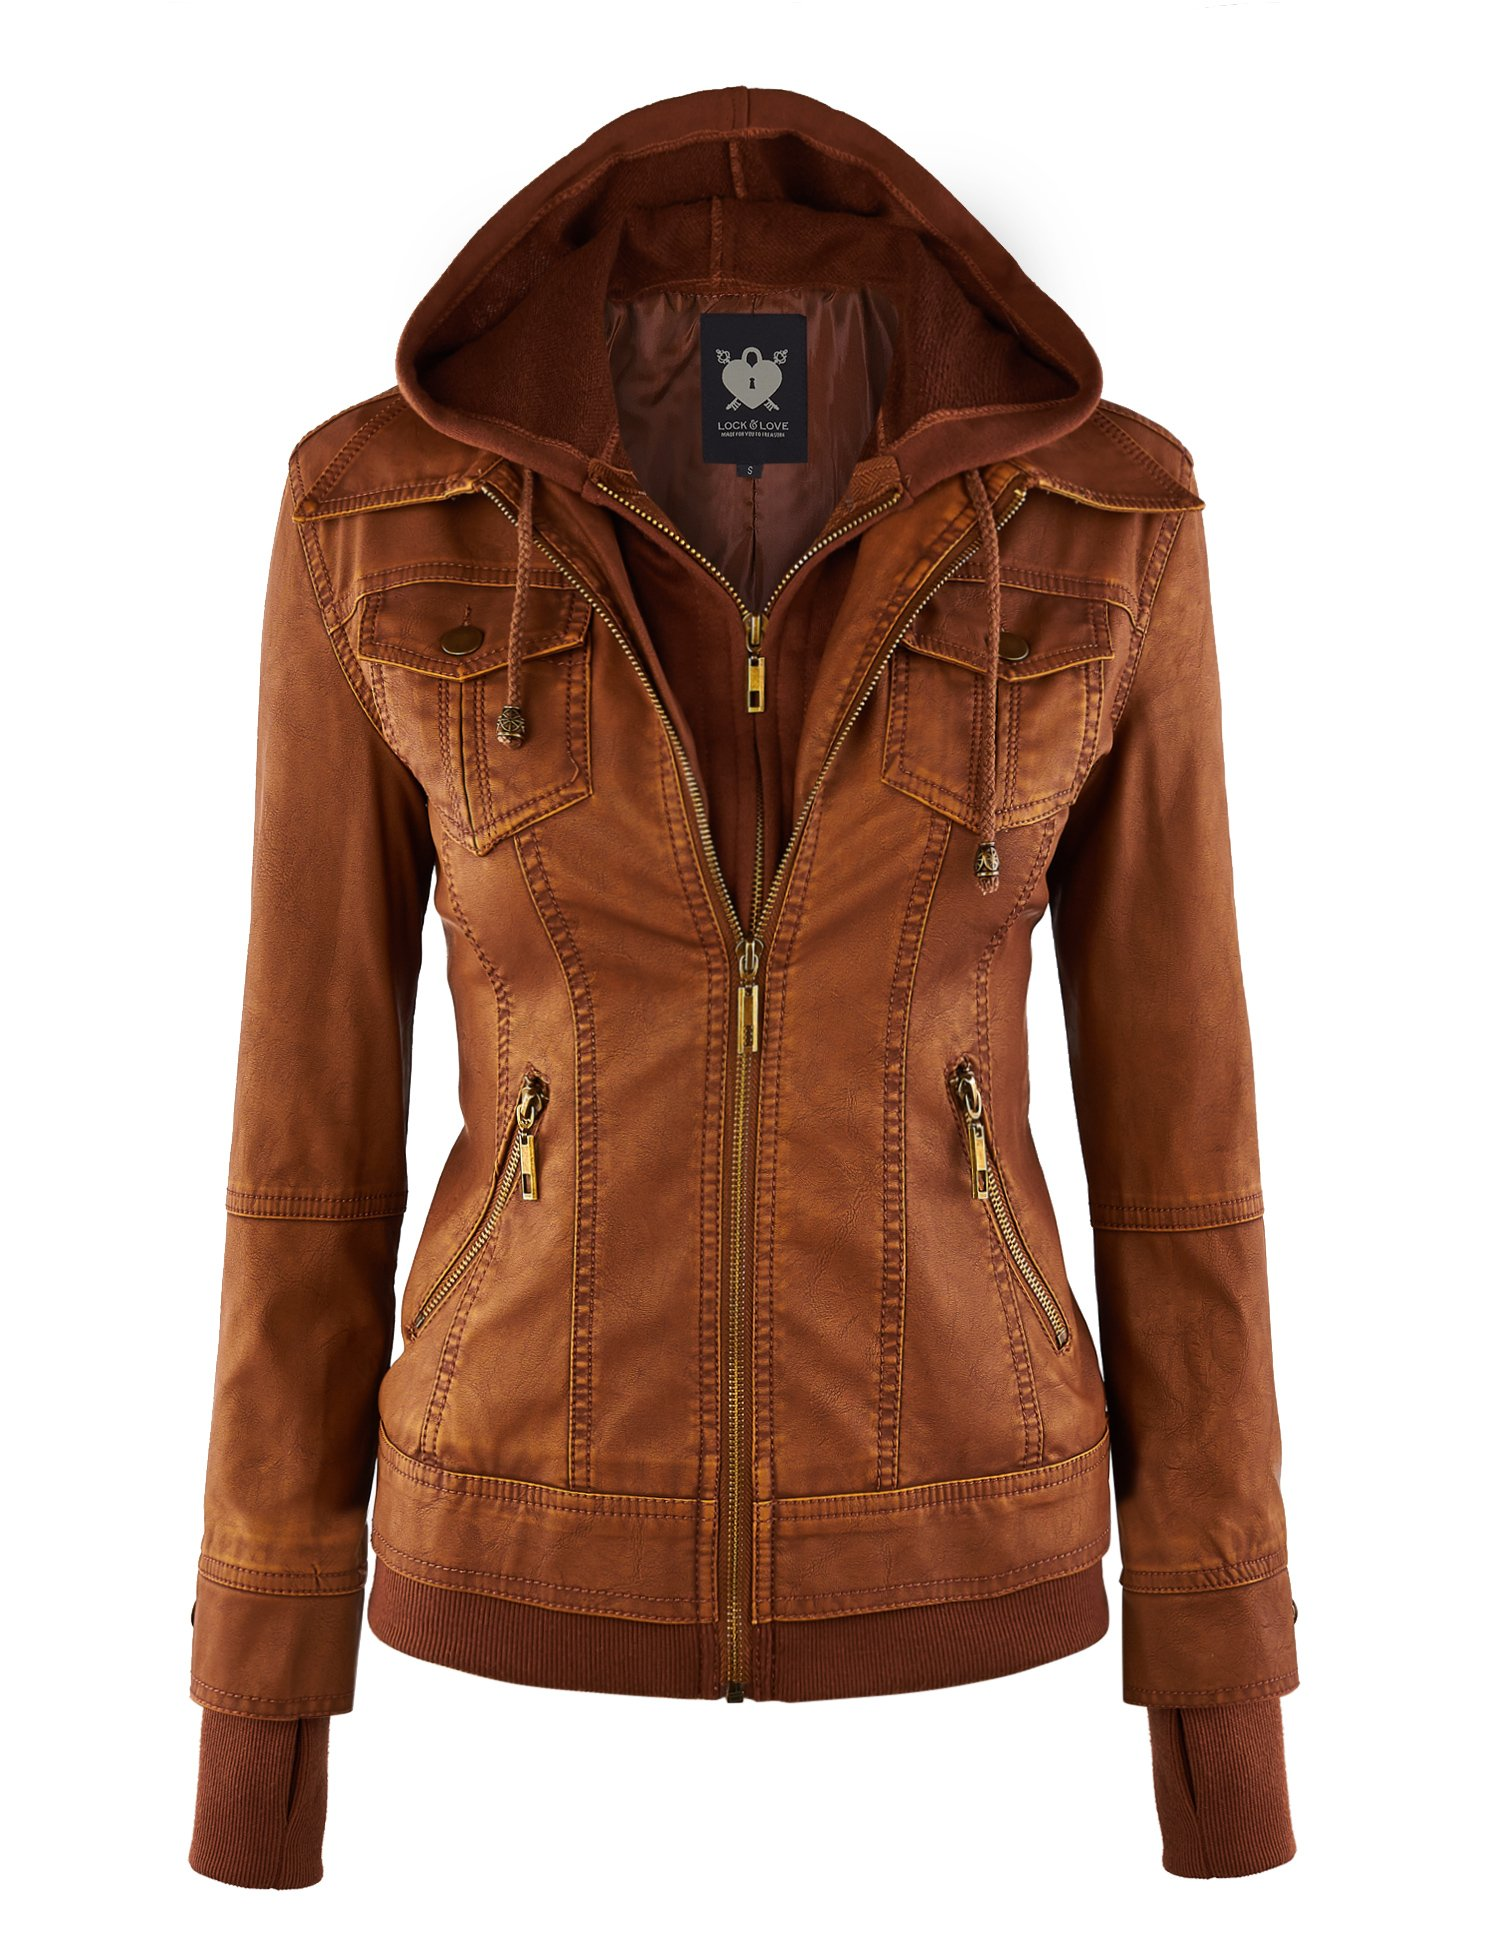 WJC664 Womens Faux Leather Jacket With Hoodie L Camel